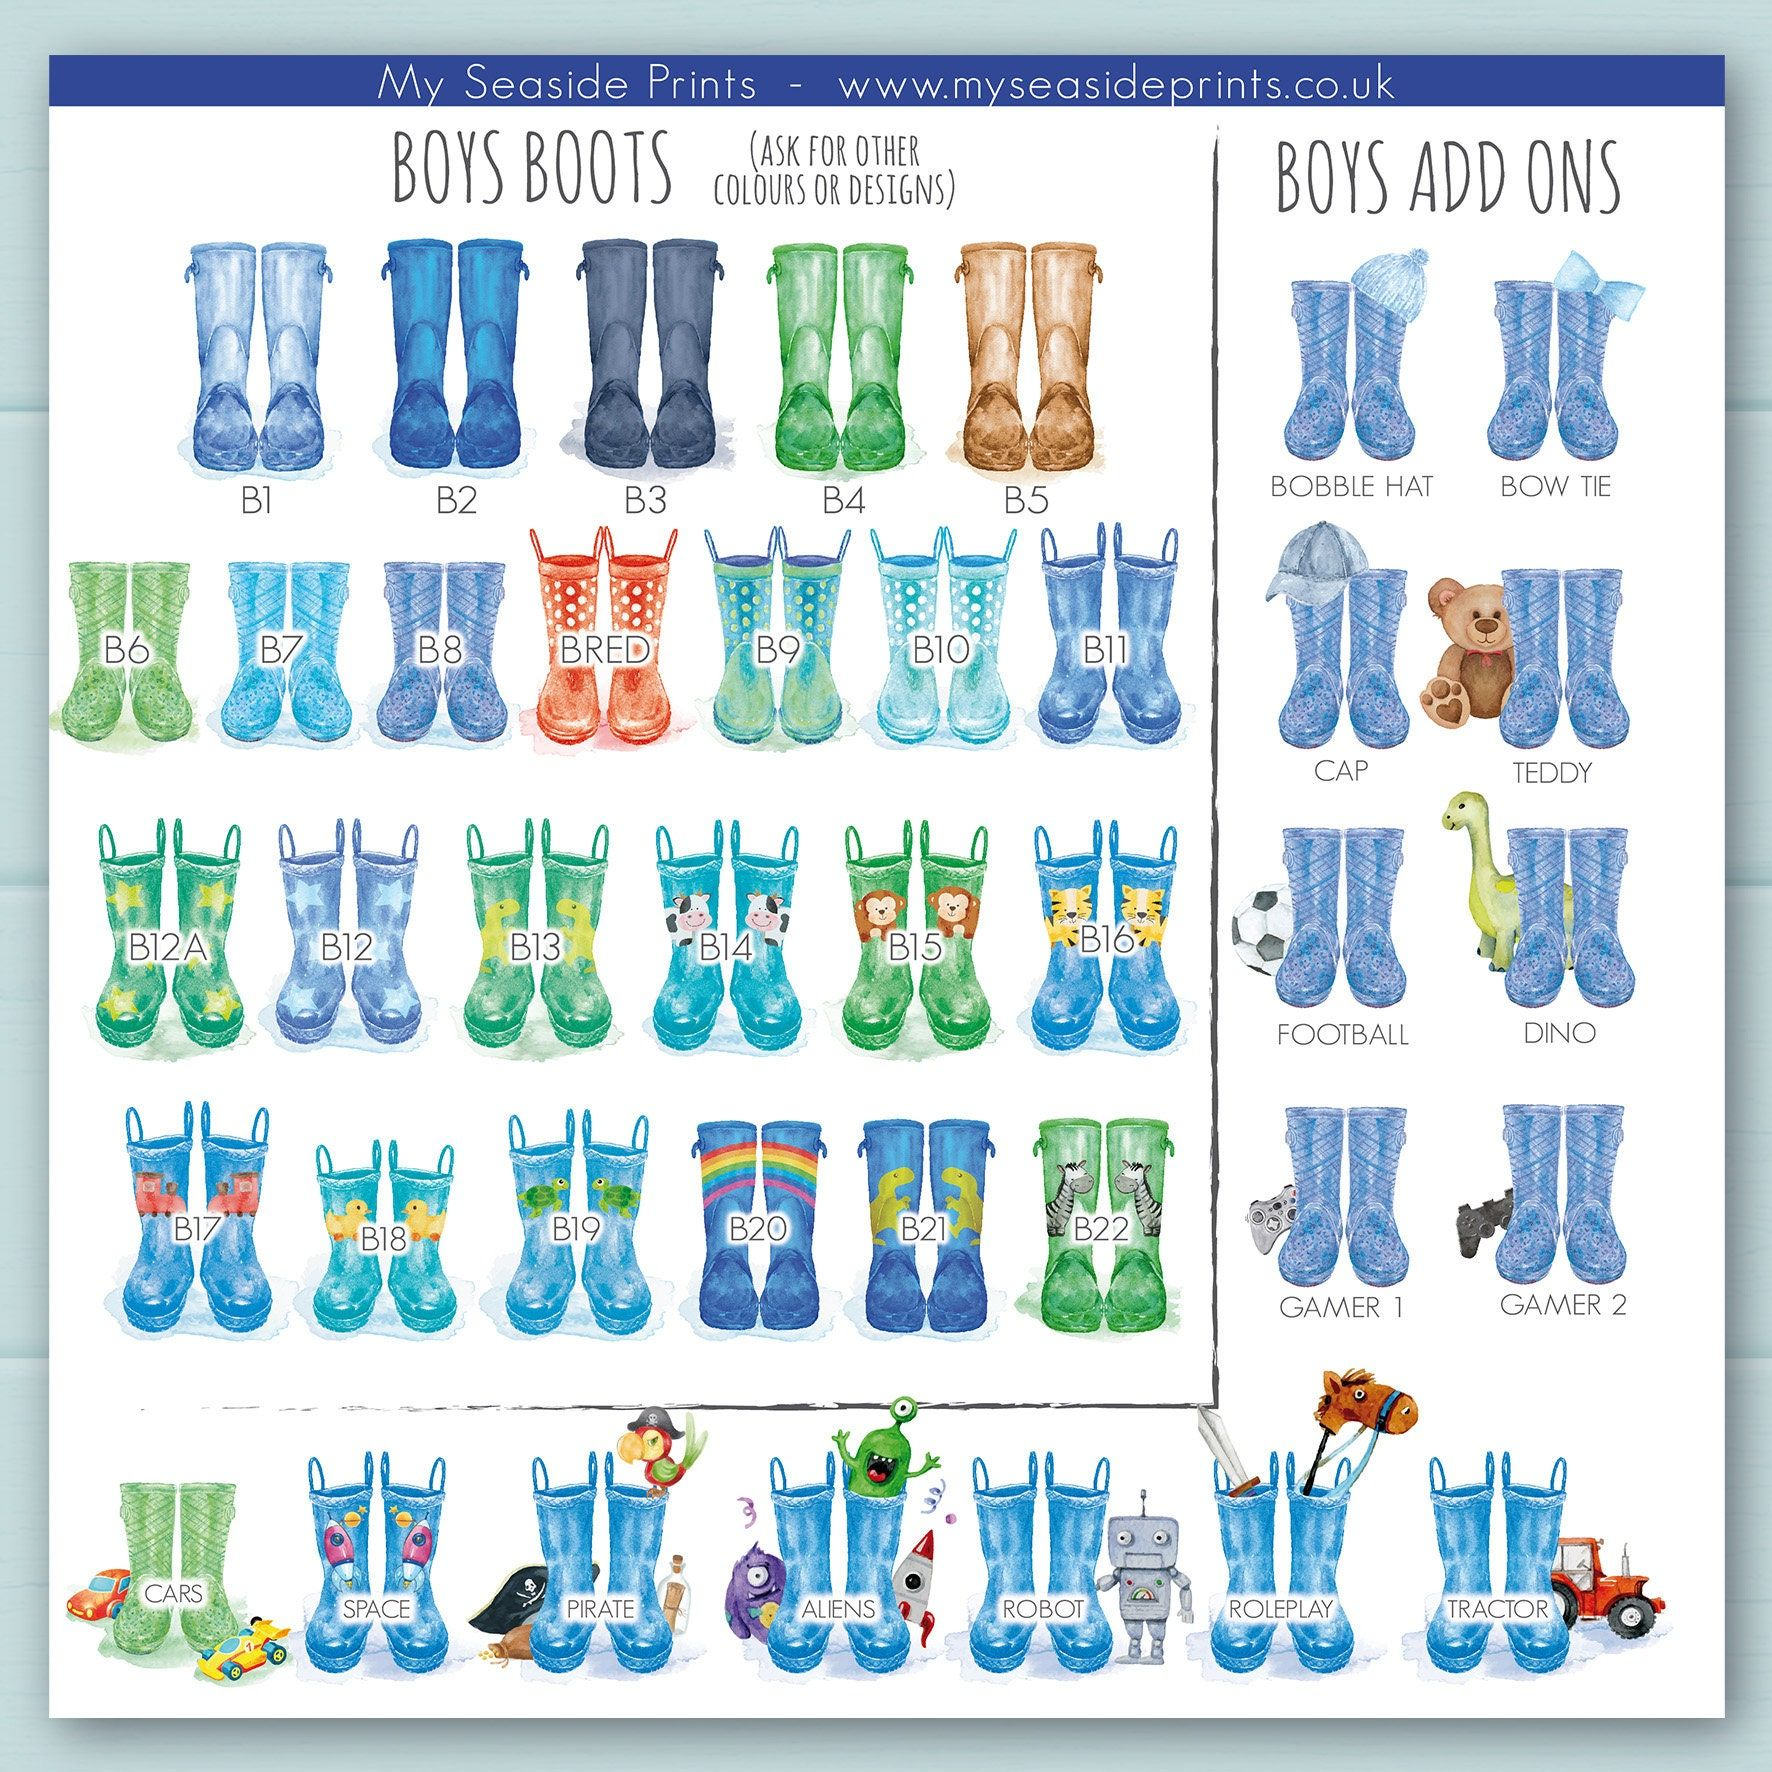 This personalised Joint Christening print is suitable for a joint or shared Christening. Includes a different pair of wellington boots for each child and the children's names and date and place of Christening. The Joint Christening print can also be adapted as a gift or present for a baptism or naming ceremony. Many different options of welly boots are available to choose from. Makes a perfect gift for a shared Christening and a lovely keepsake present for parents or grandparents. It will bright